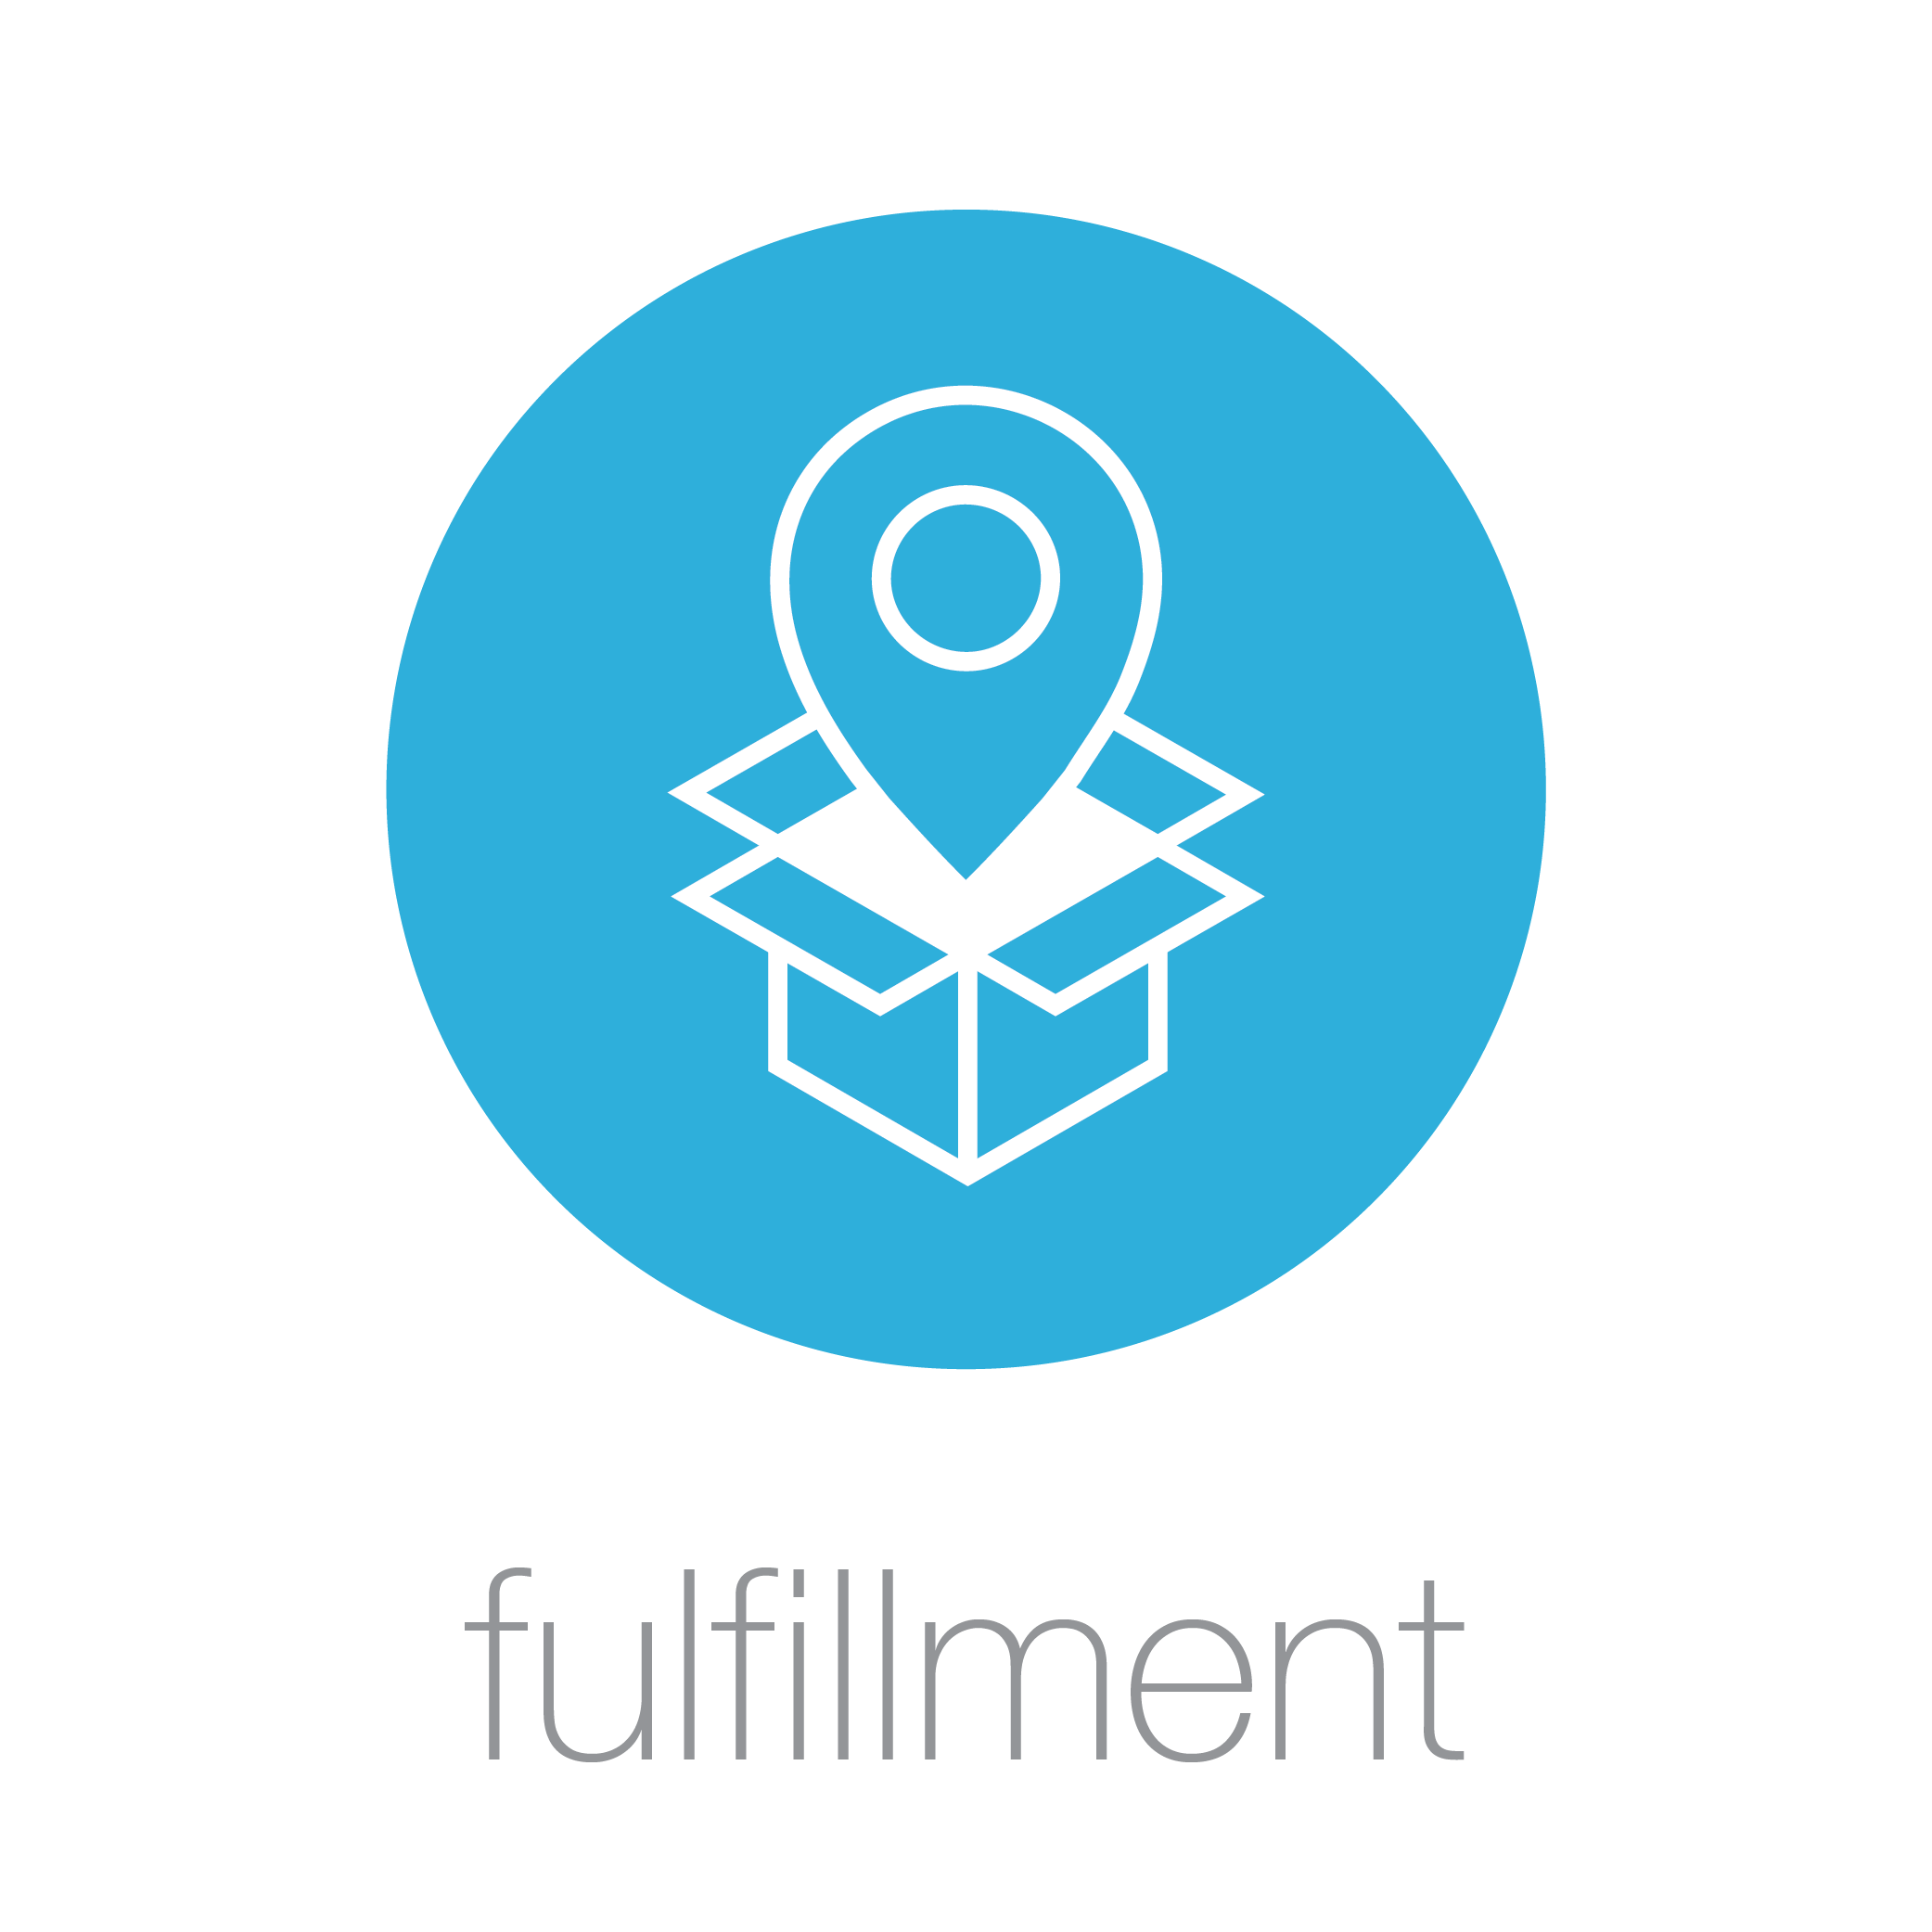 neutral7 services fulfillment